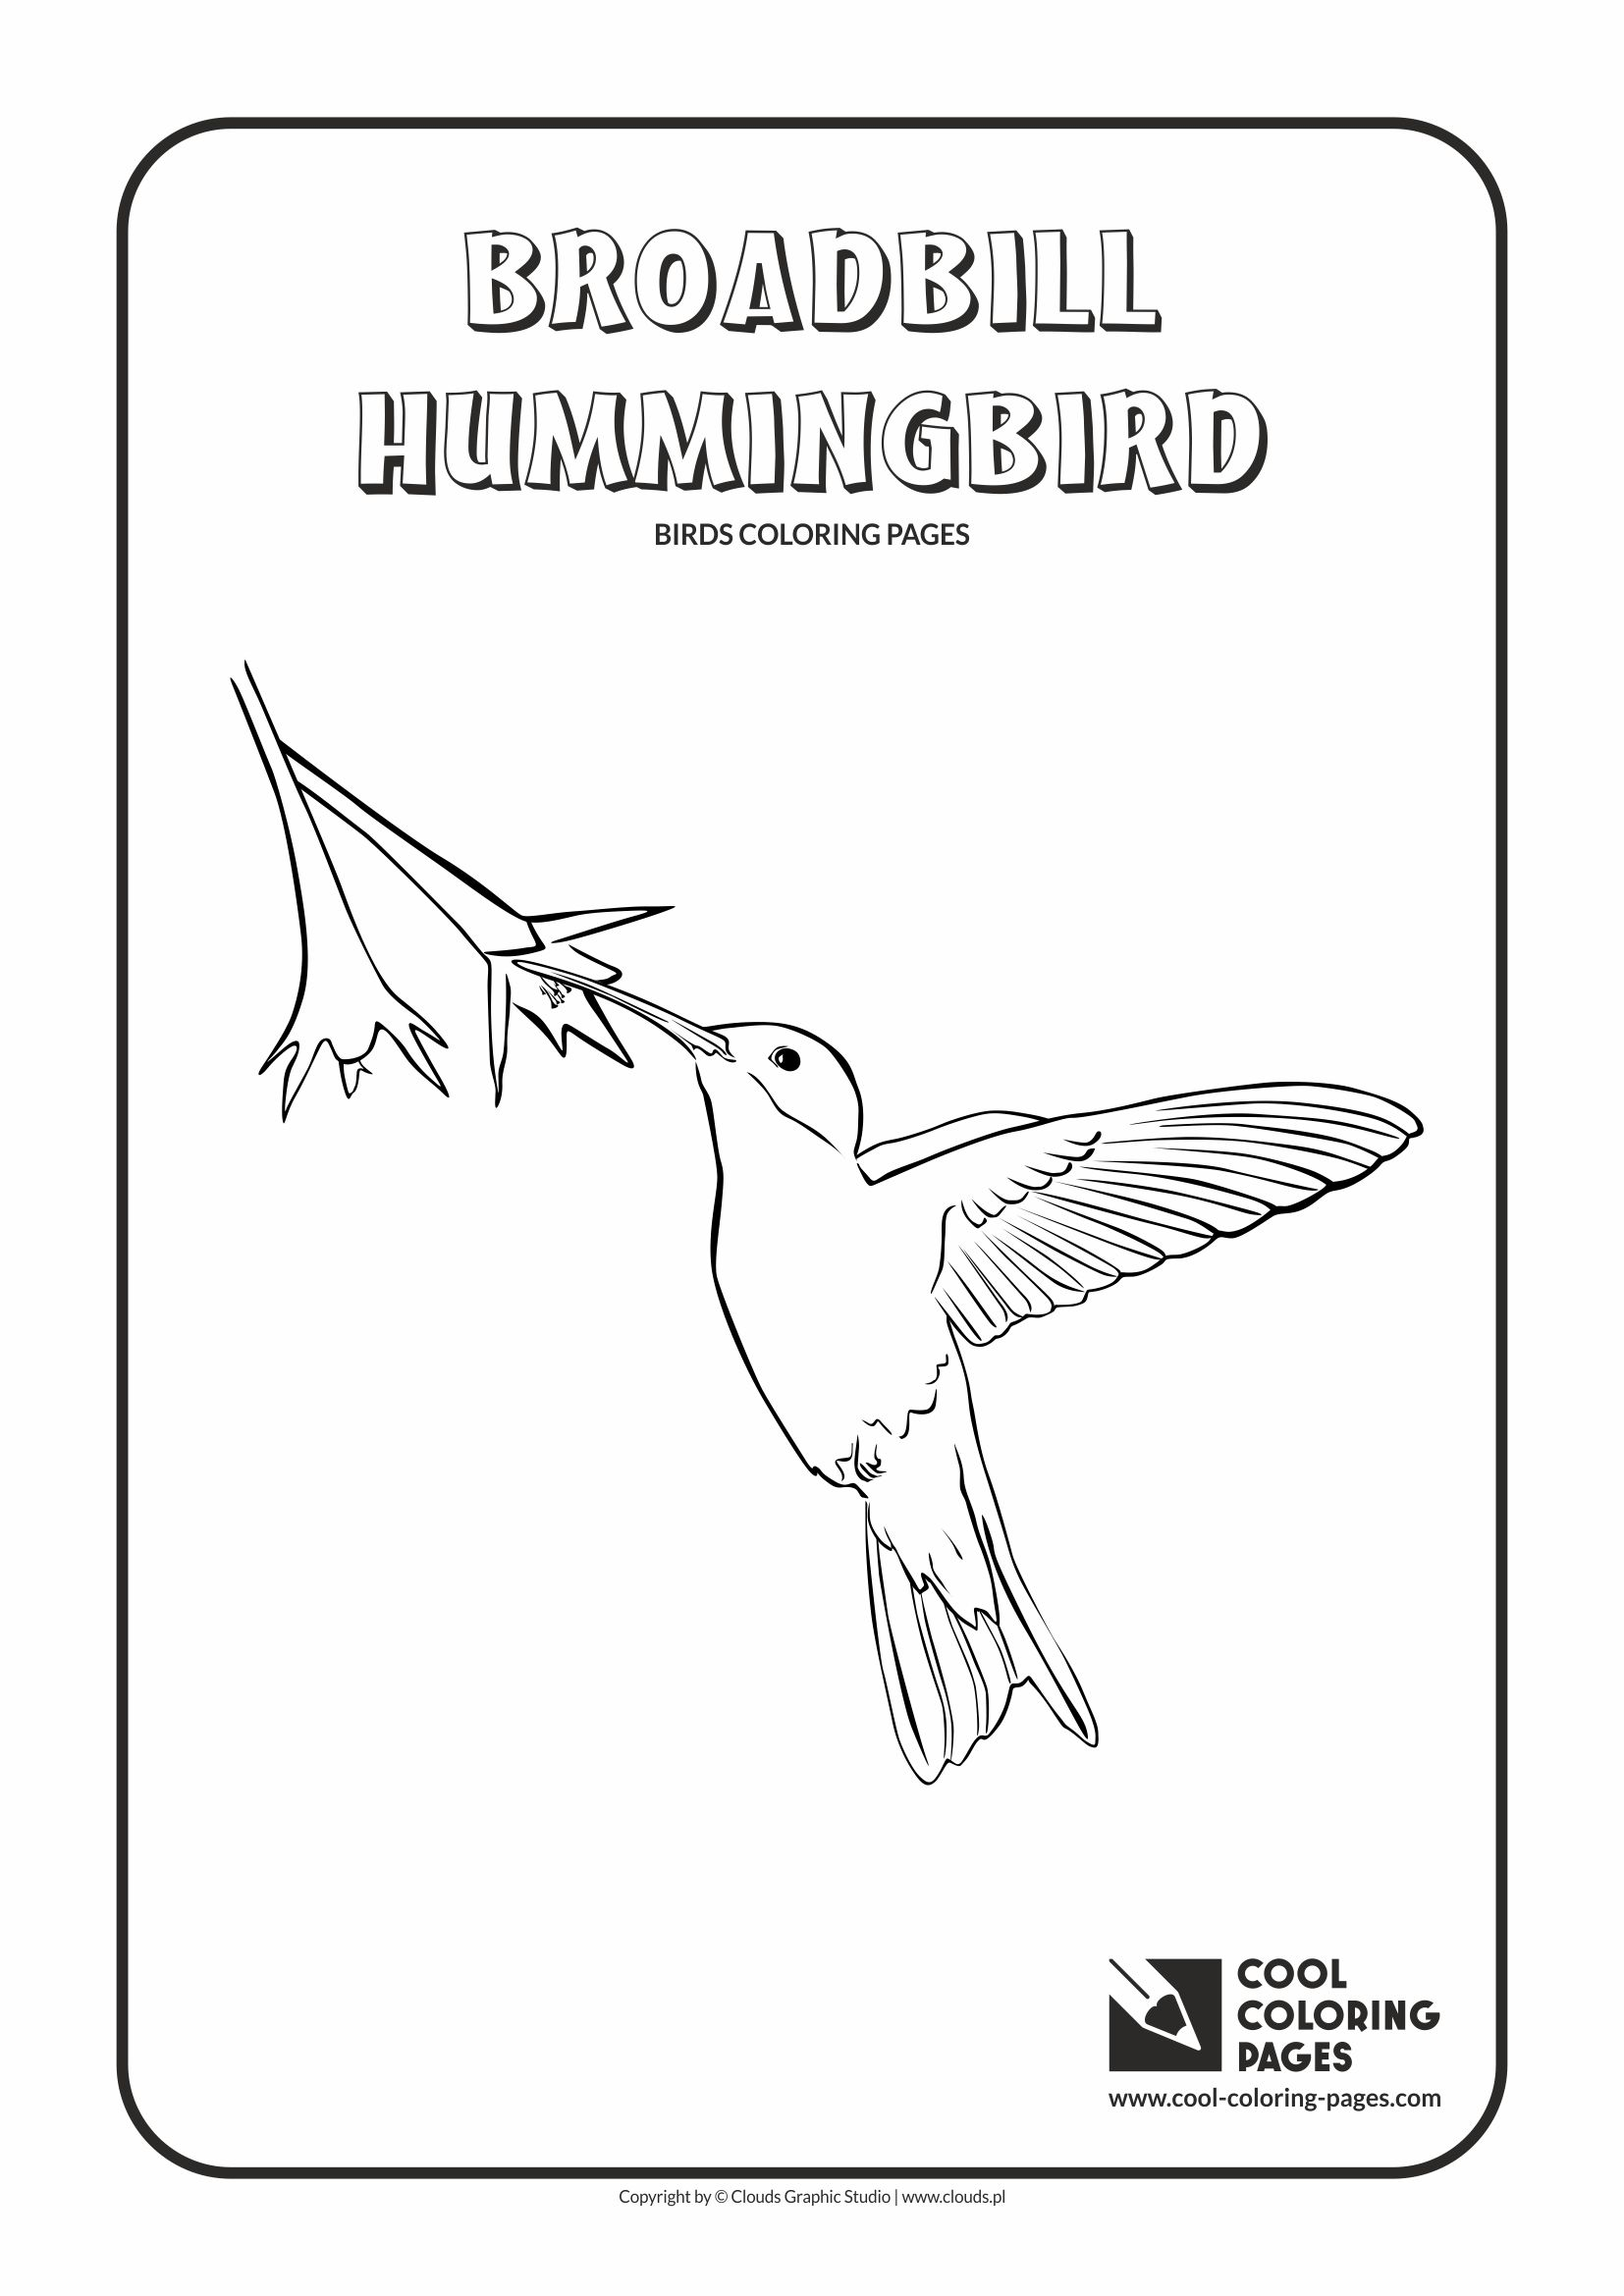 hummingbird coloring pages for kids. hummingbird color pattern ...